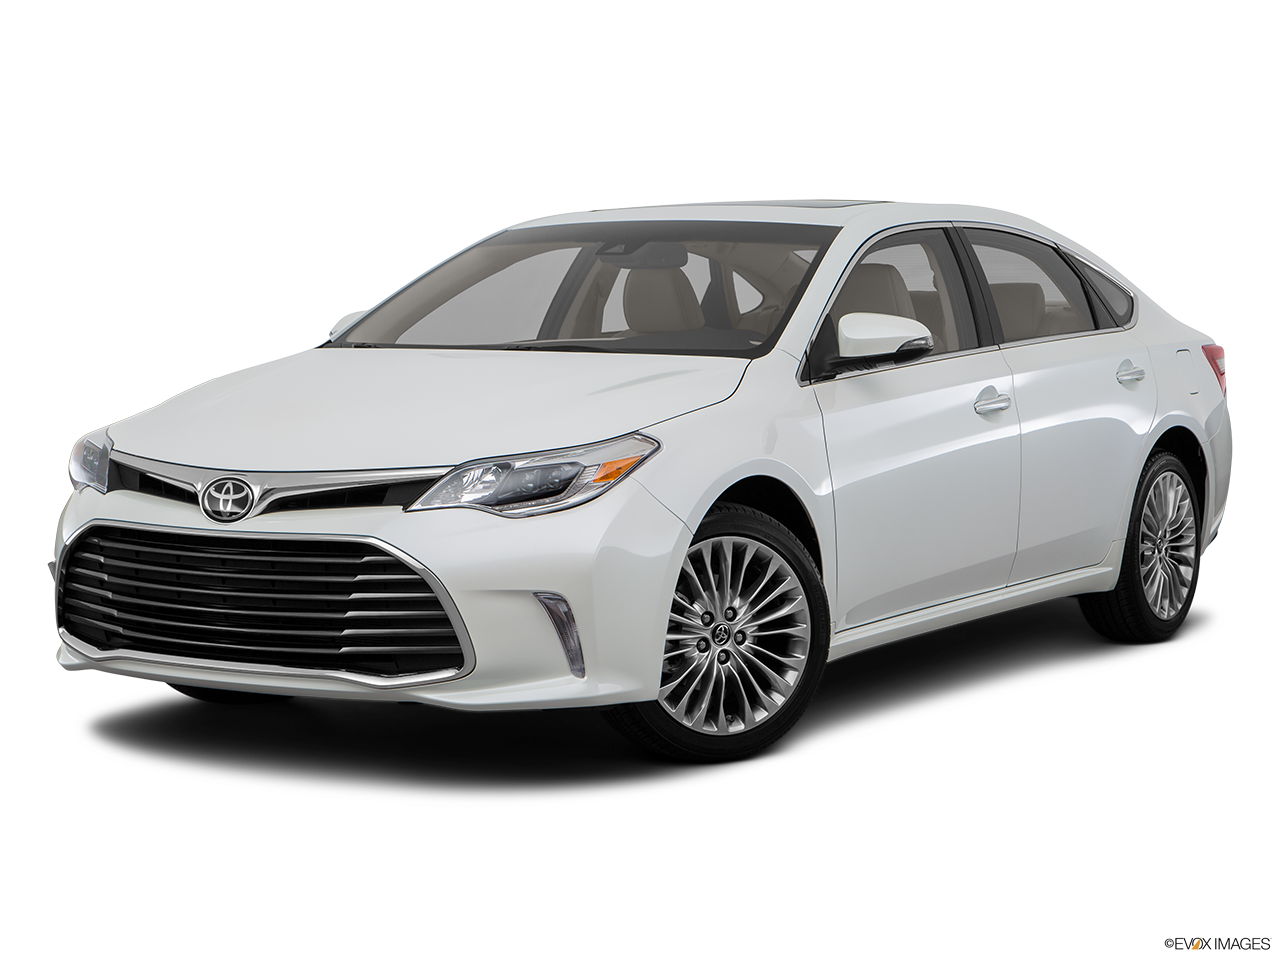 Test Drive A 2016 Toyota Avalon at Toyota of Glendale Los Angeles